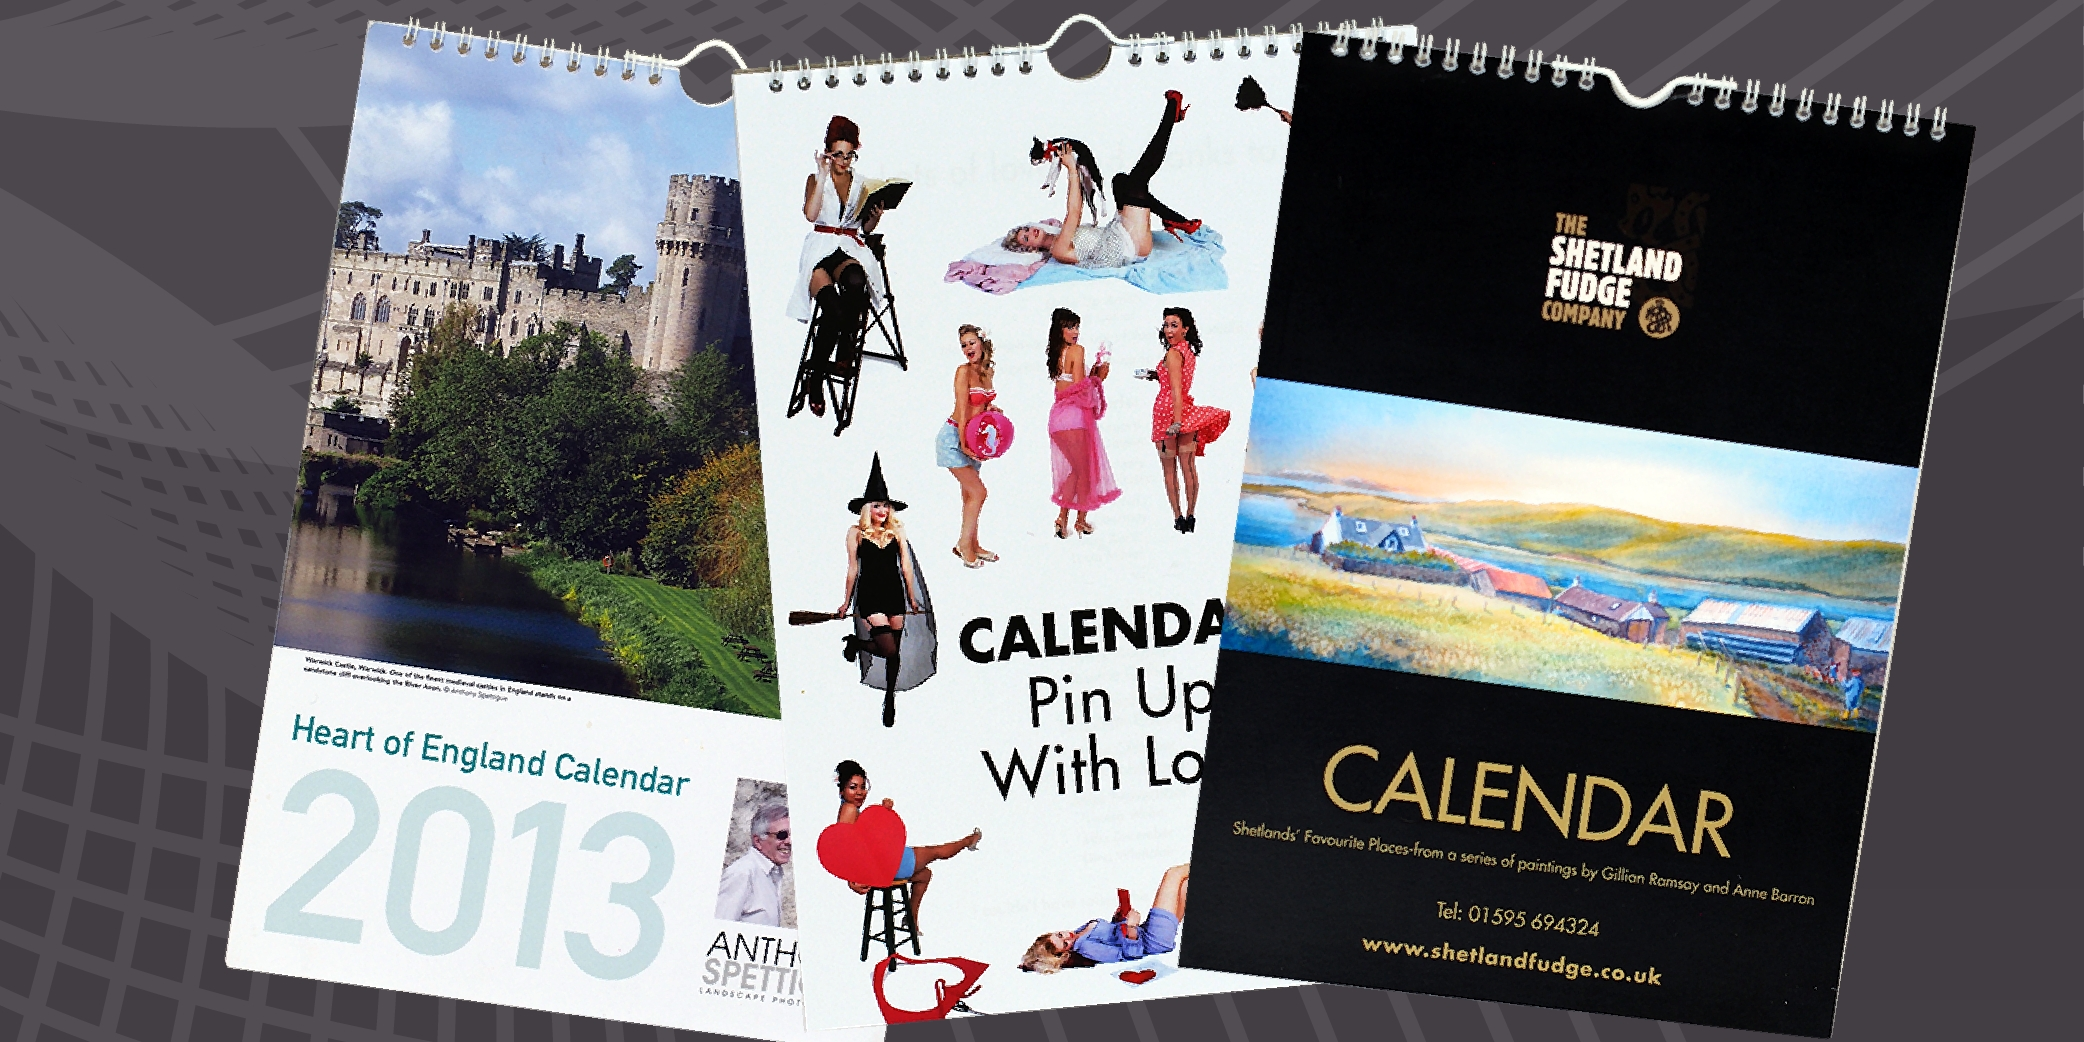 Ask Online Print On Demand Shop For Calendars, Cards, Books